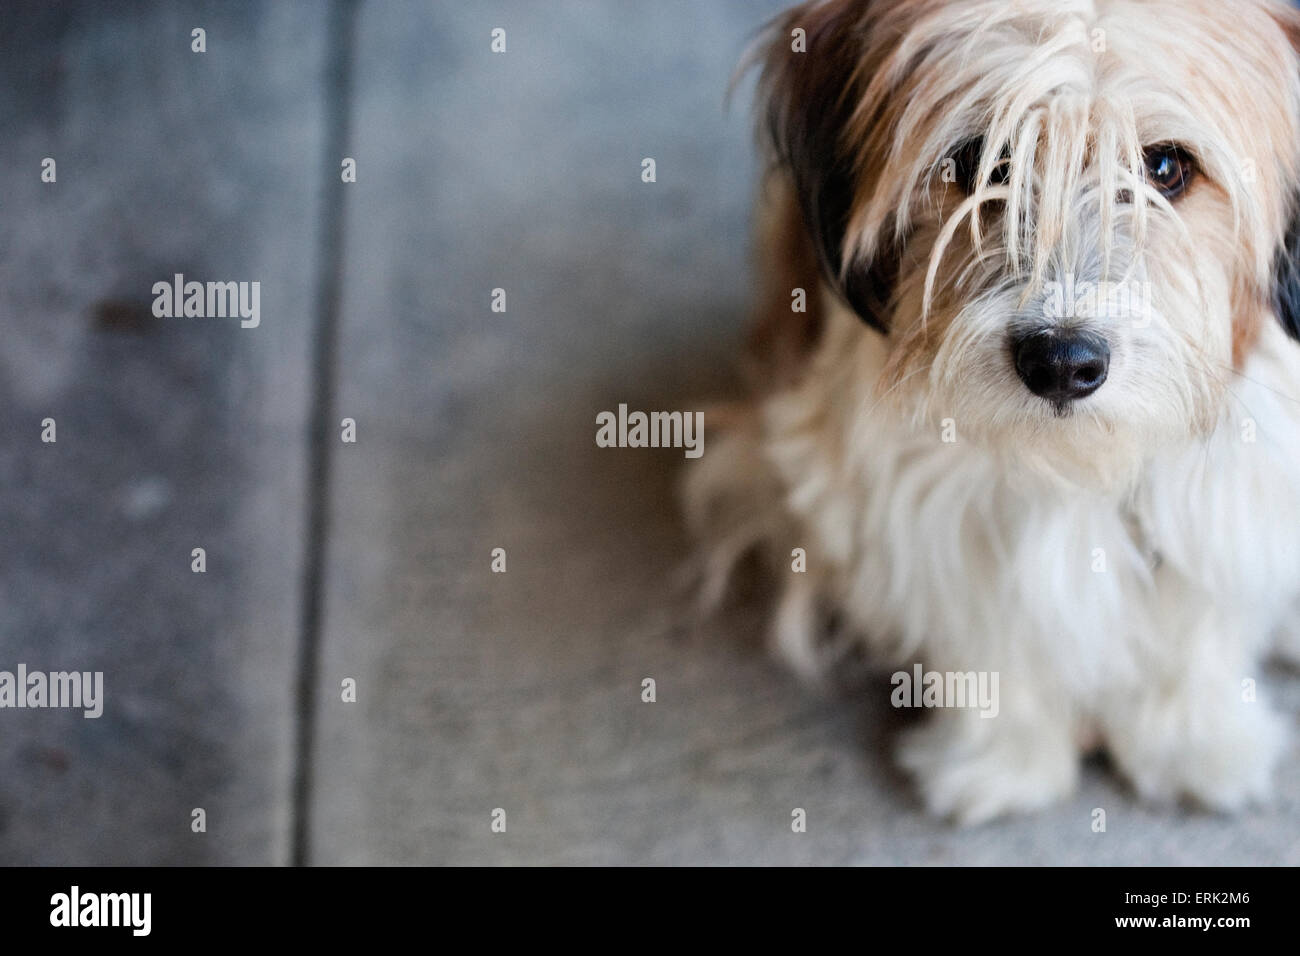 outdoor portrait of lonely small cute scruffy terrier mix dog looking up sitting on concrete sidewalk - Stock Image